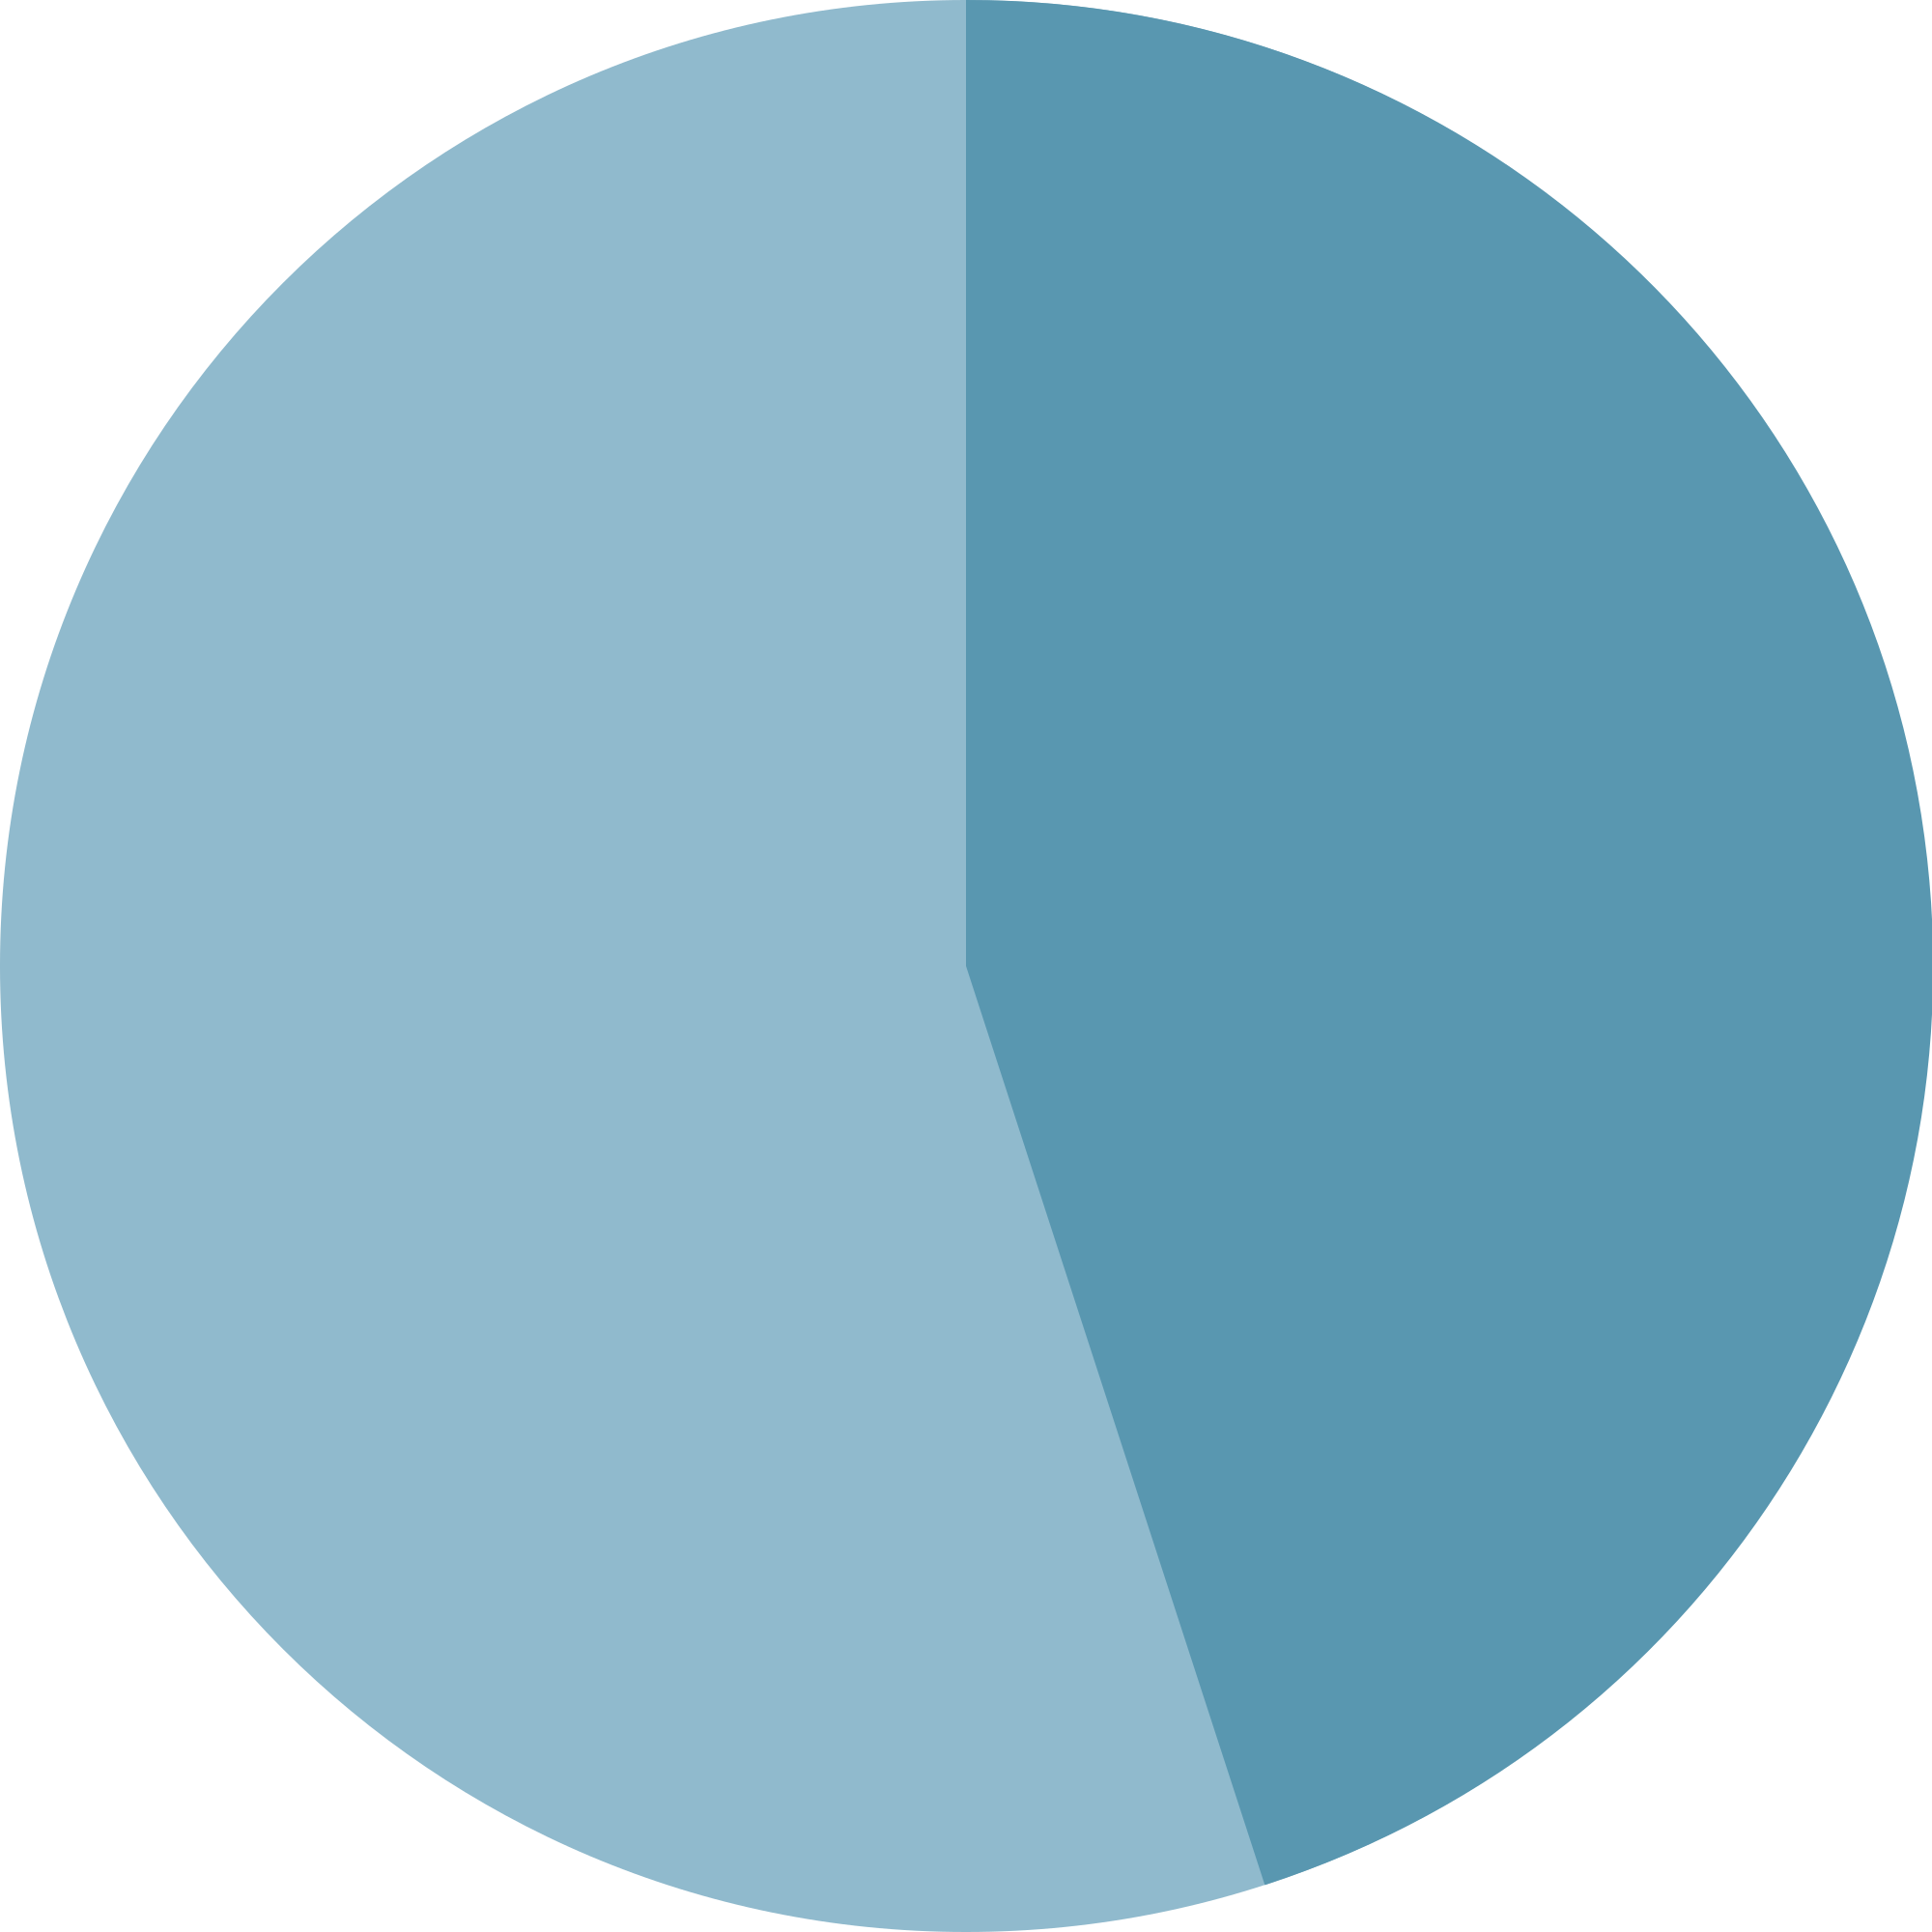 File chart svg wikimedia. Pie charts png jpg download